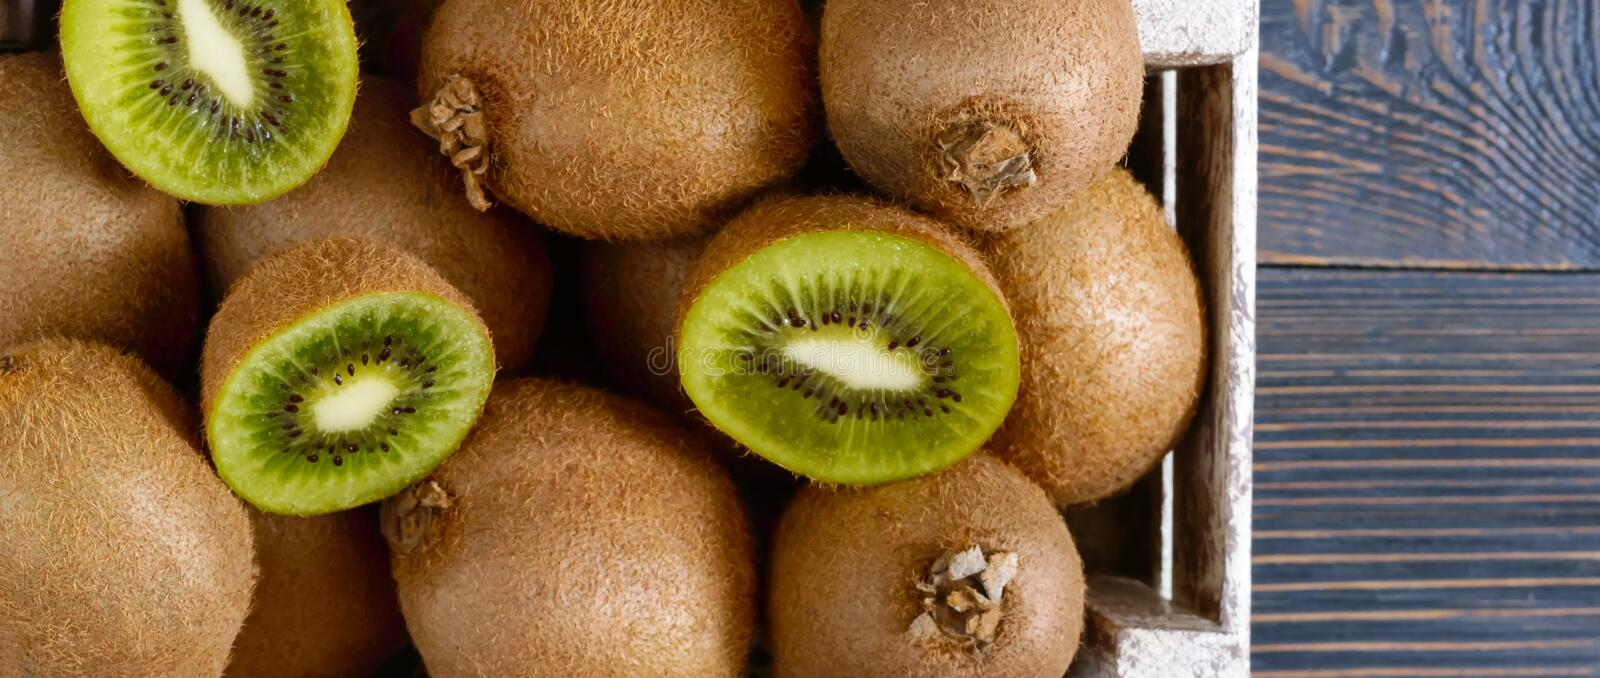 Fresh ripe kiwi fruit in a wooden box on the table. Tropical Fruit. Healthy food. stock images